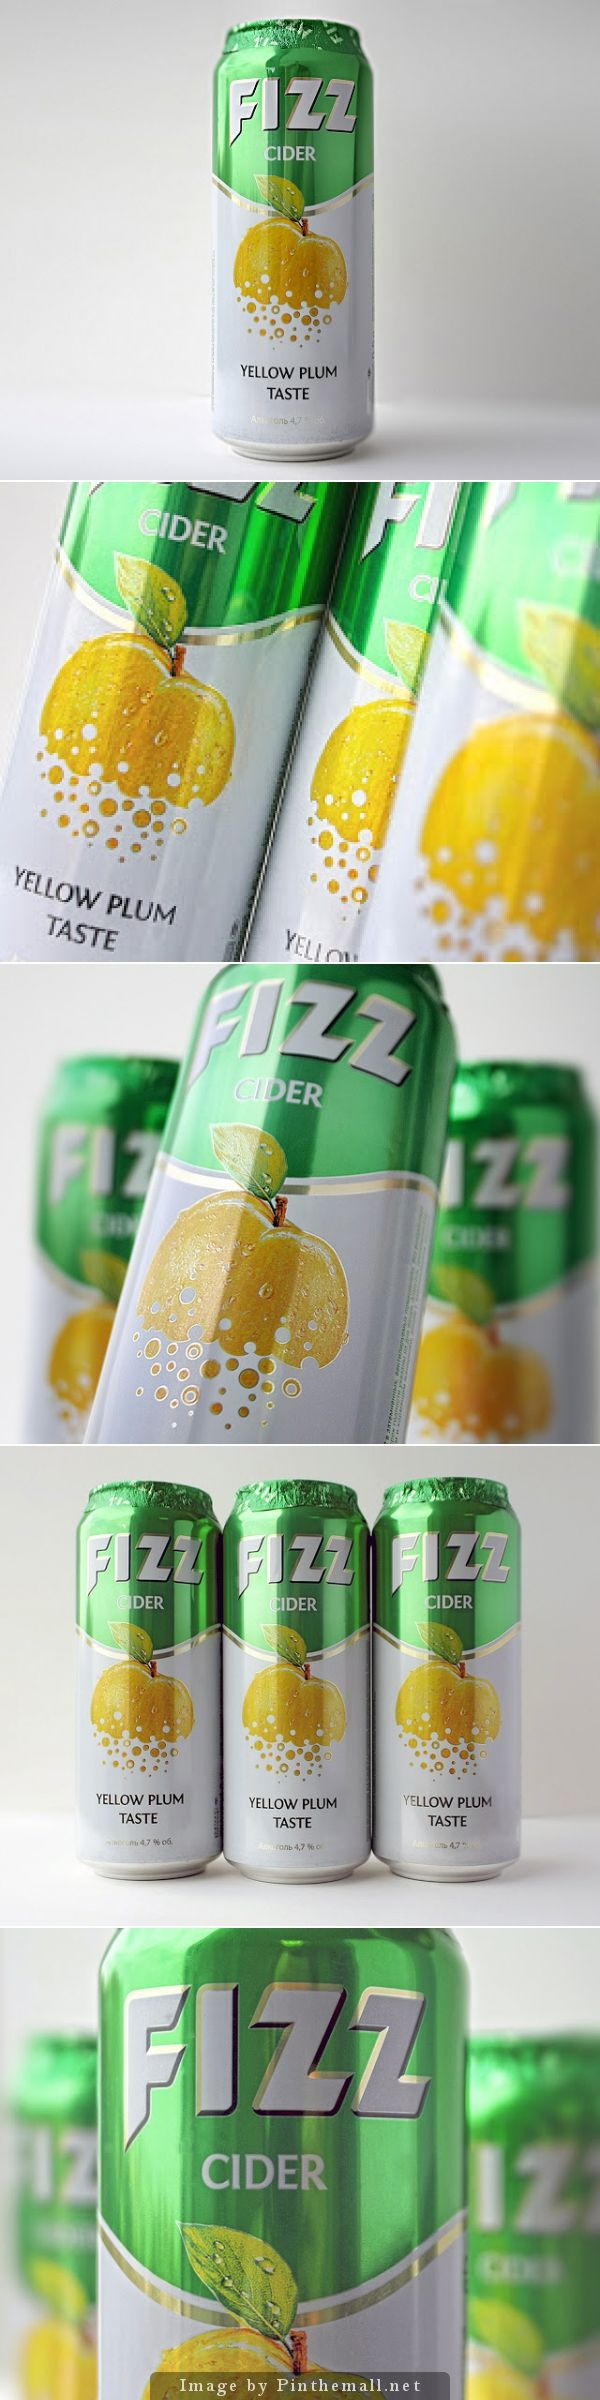 I'm not doing energy drinks but I liked the typography and the colour chosen for this drink